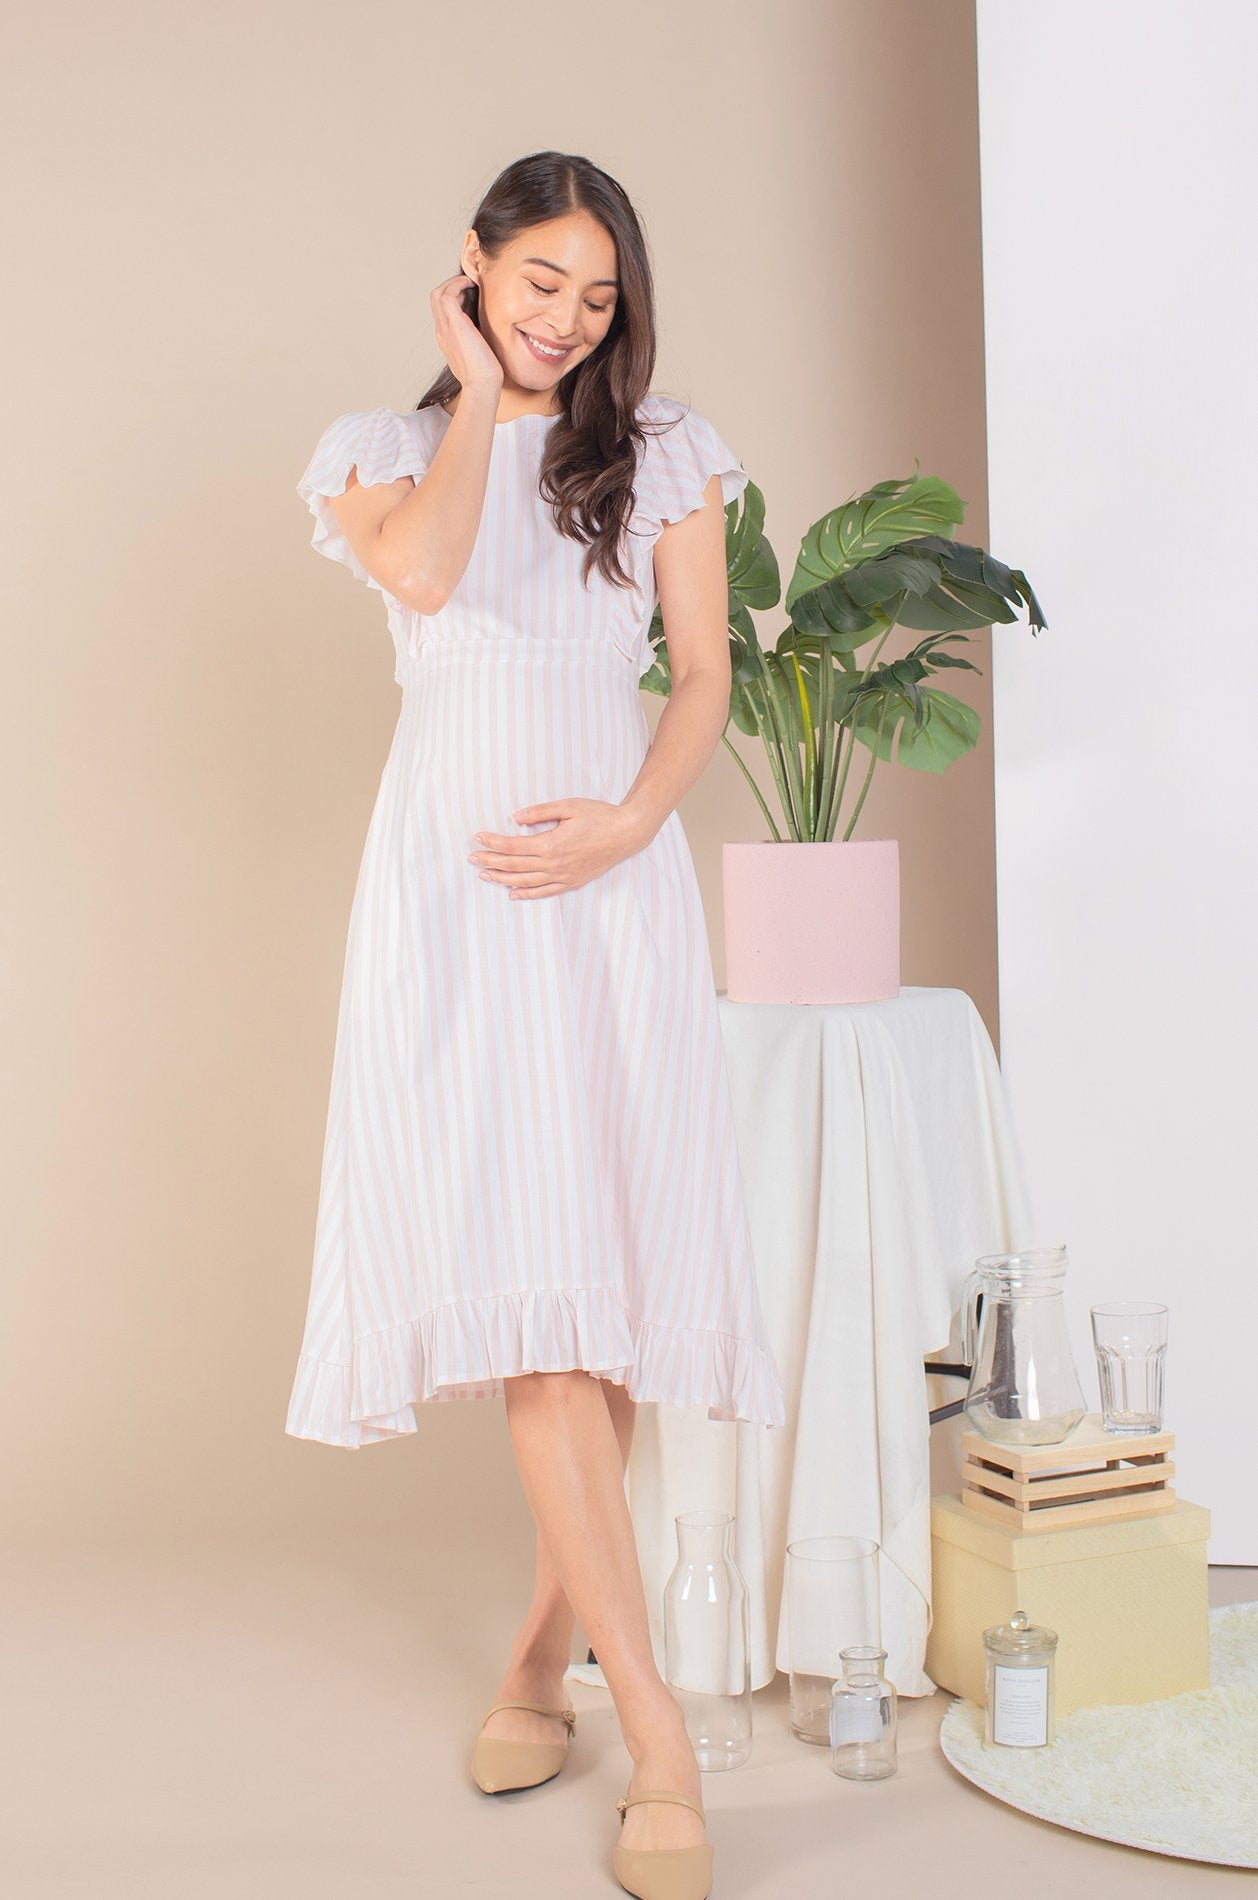 Alora Frills Nursing Dress In Pink Stripes Nursing Wear Jump Eat Cry